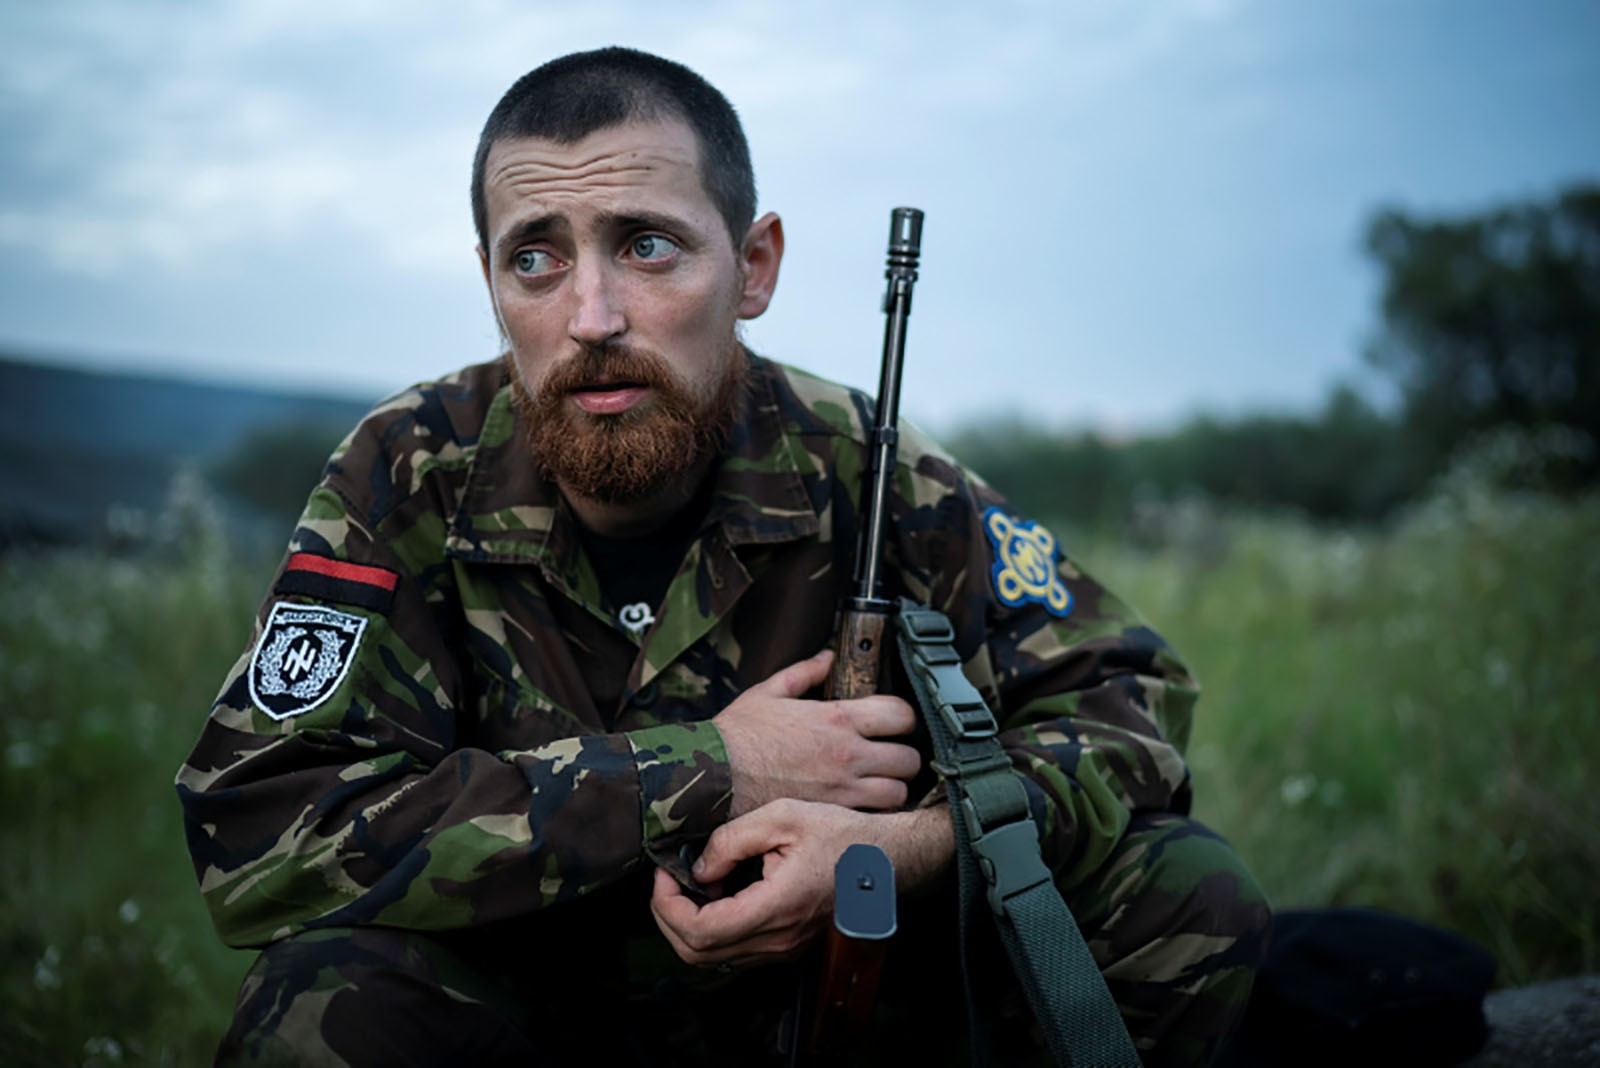 Yuri Chornota Cherkashin, head of Sokil Falcon, the youth wing of the nationalist Svoboda party, sits with his AK-47 rifle.